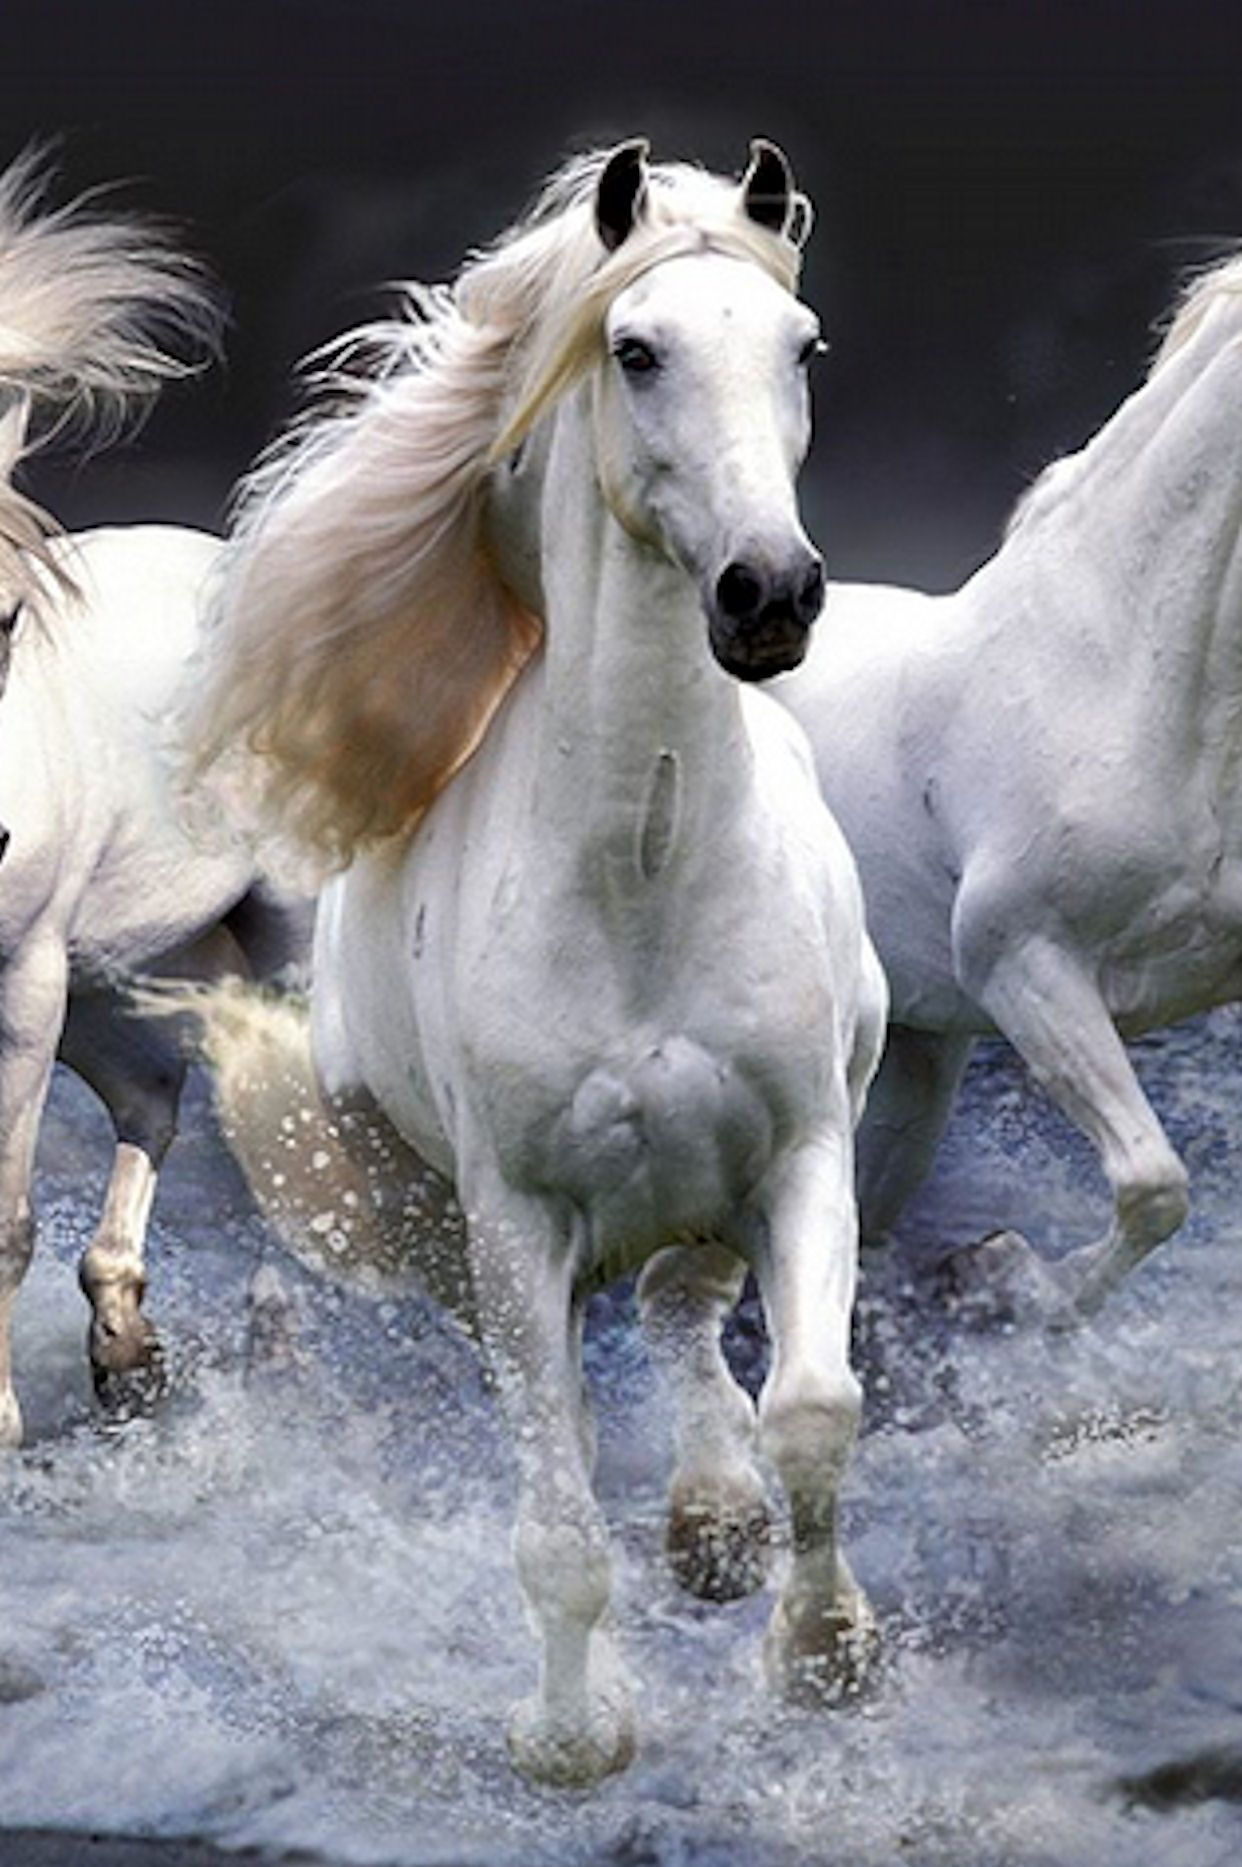 Beautiful White Horses Running Through The Water Please Also Visit